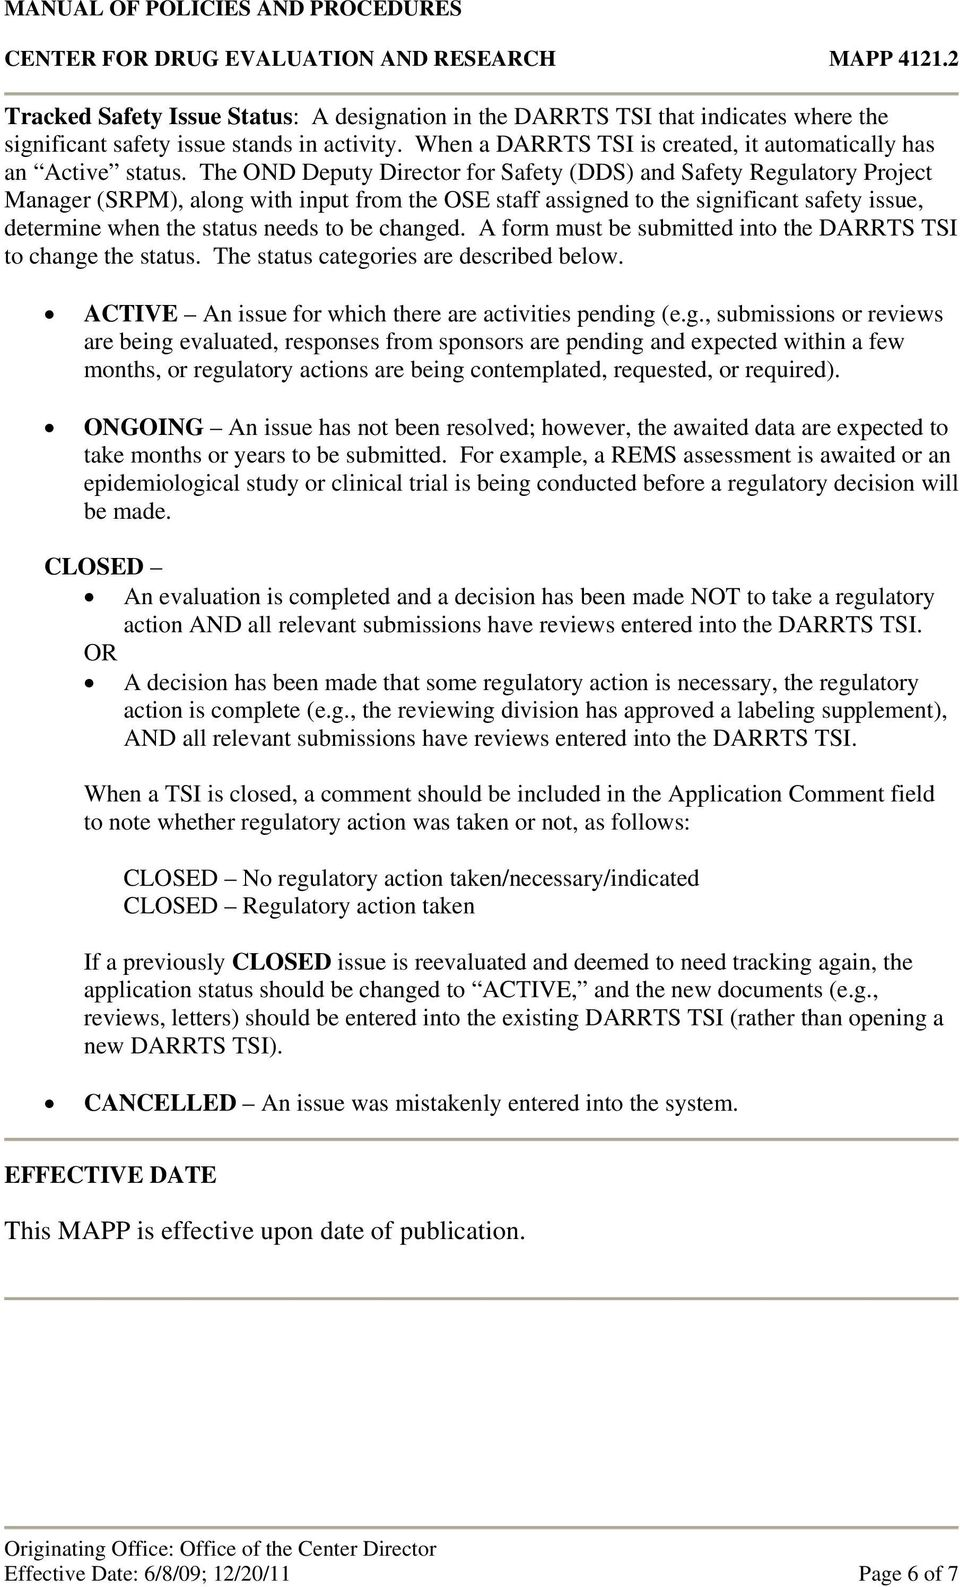 be changed. A form must be submitted into the DARRTS TSI to change the status. The status categories are described below. ACTIVE An issue for which there are activities pending (e.g., submissions or reviews are being evaluated, responses from sponsors are pending and expected within a few months, or regulatory actions are being contemplated, requested, or required).